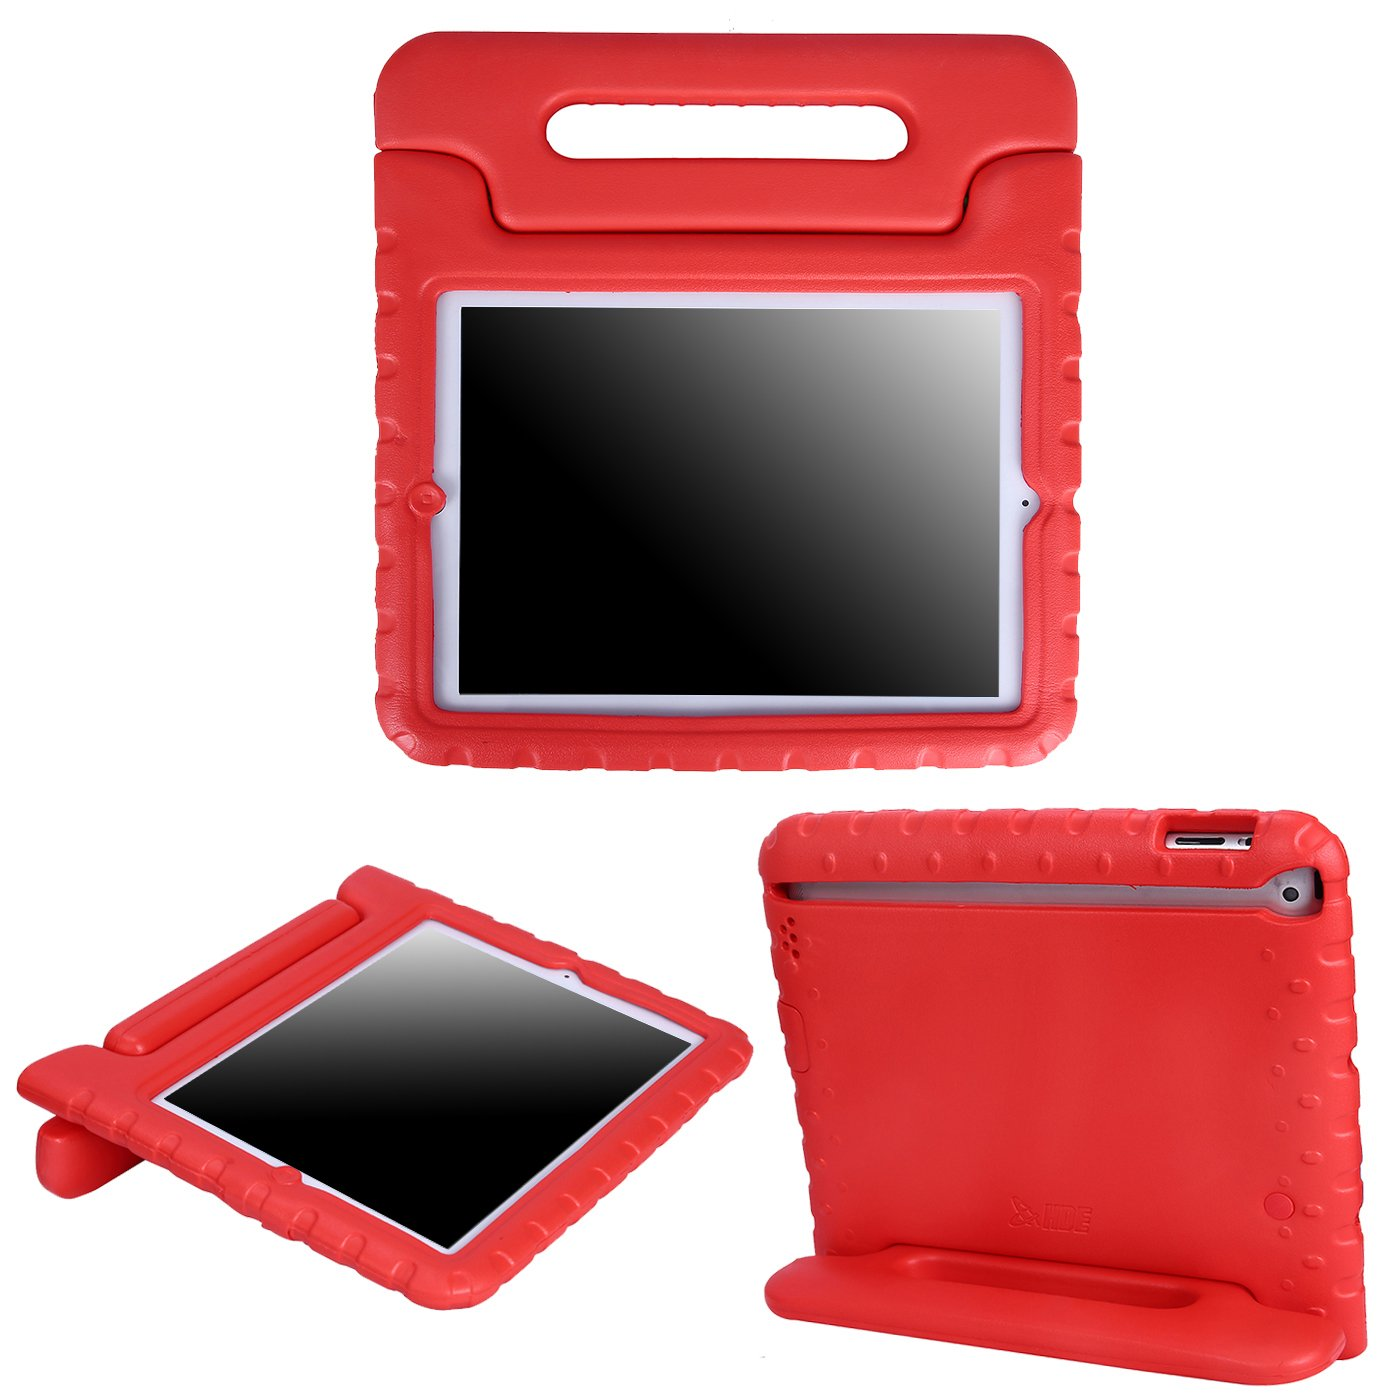 HDE Shock Proof iPad Case for Kids Bumper Cover Handle Stand for Apple iPad 2 iPad 3 iPad 4 (Red) FBA_HDE-C103